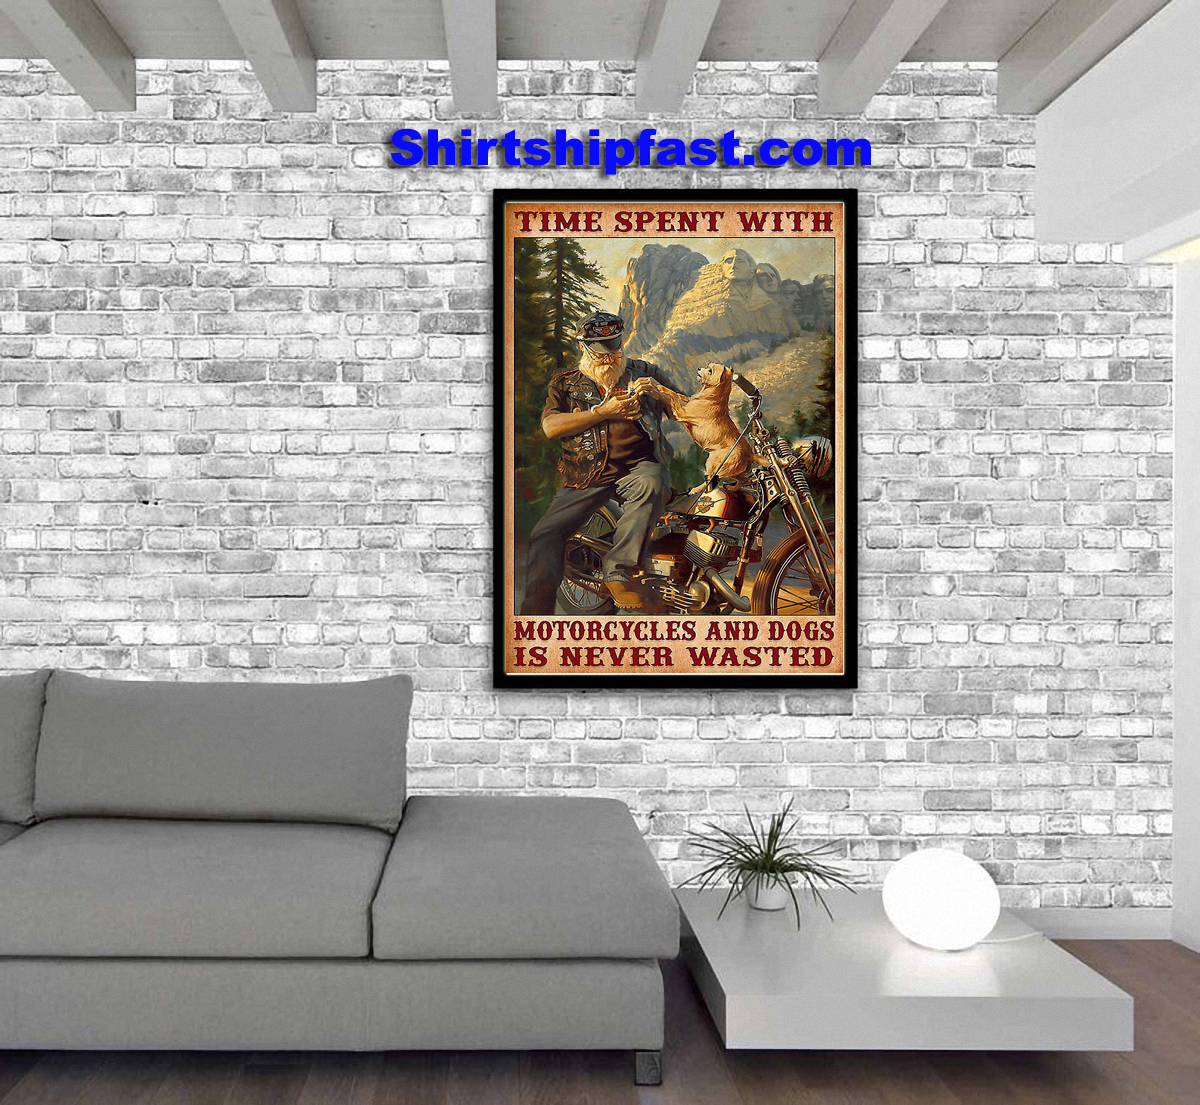 Time spent with motorcycles and dogs is never wasted poster - Picture 2